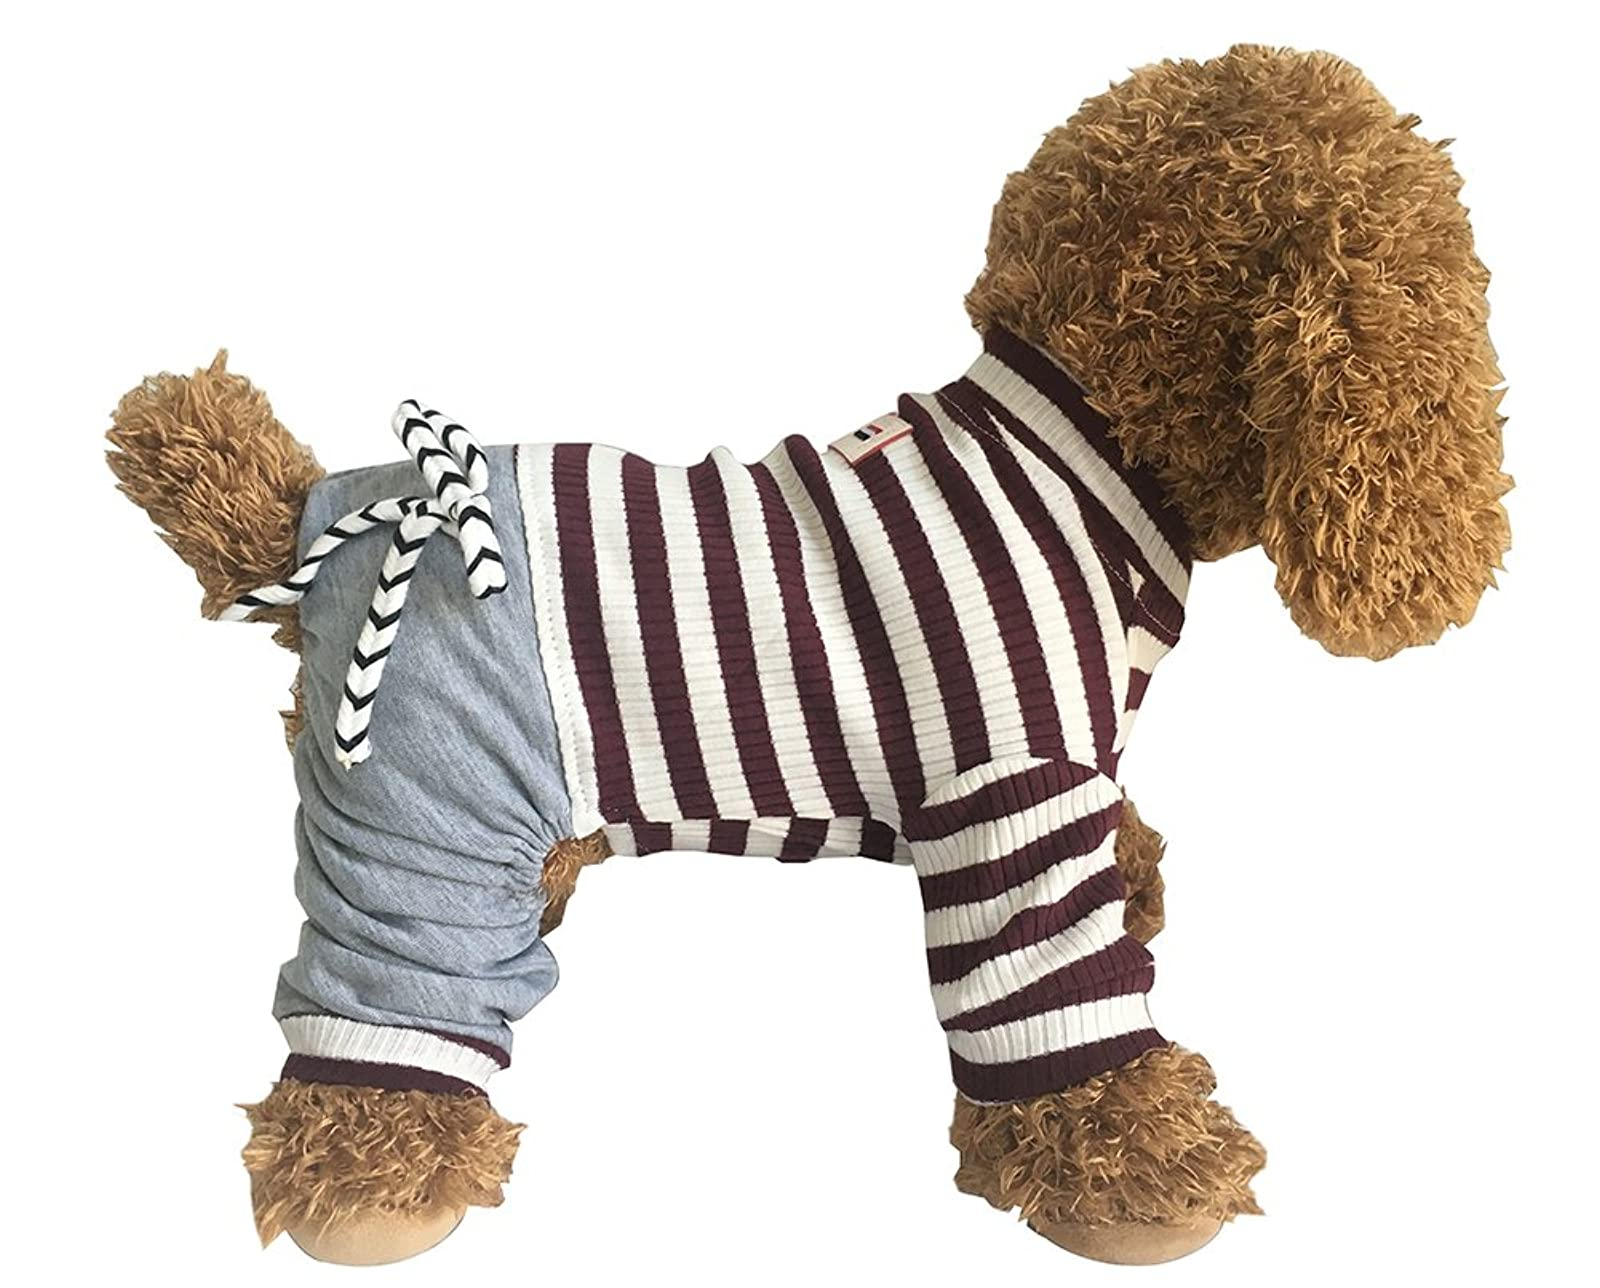 EastCities Dog ClothesSmall Dogs Pajamas Puppy OutfitBrown - 3